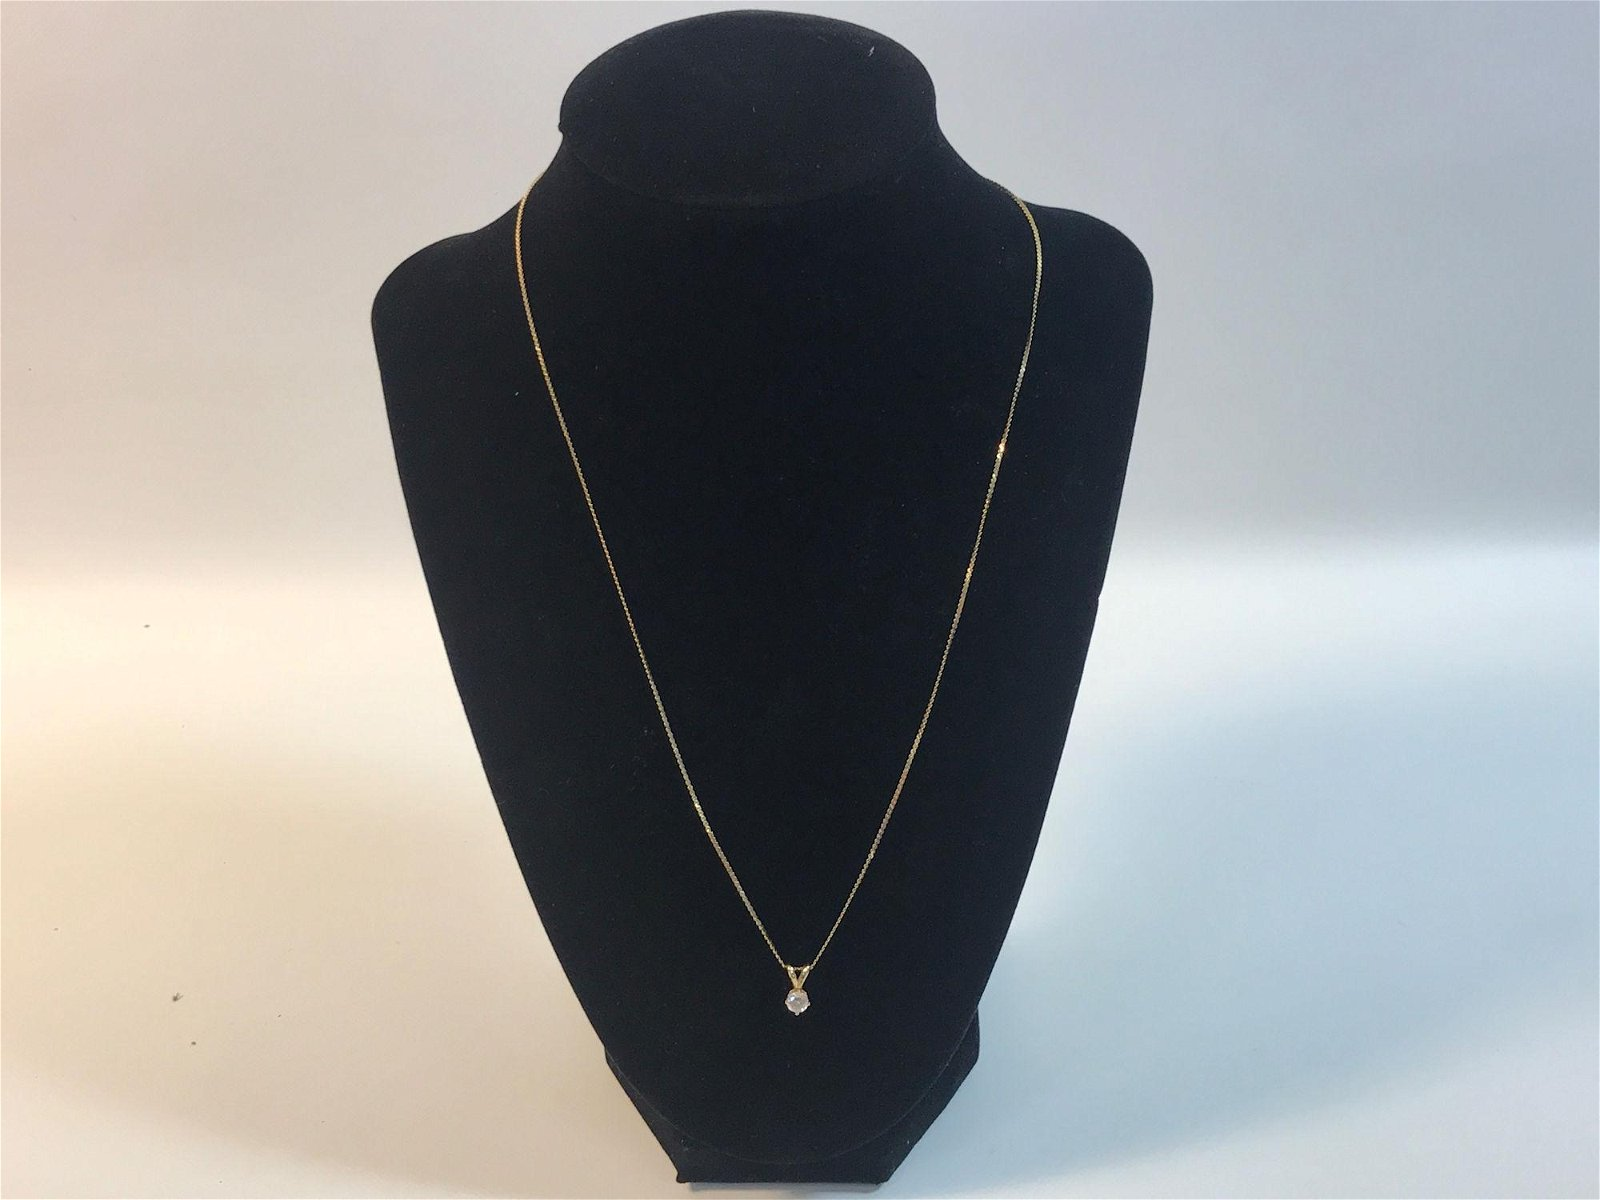 14 KT YELLOW GOLD NECKLACE W/ DIAMOND SOLITAIRE PENDANT